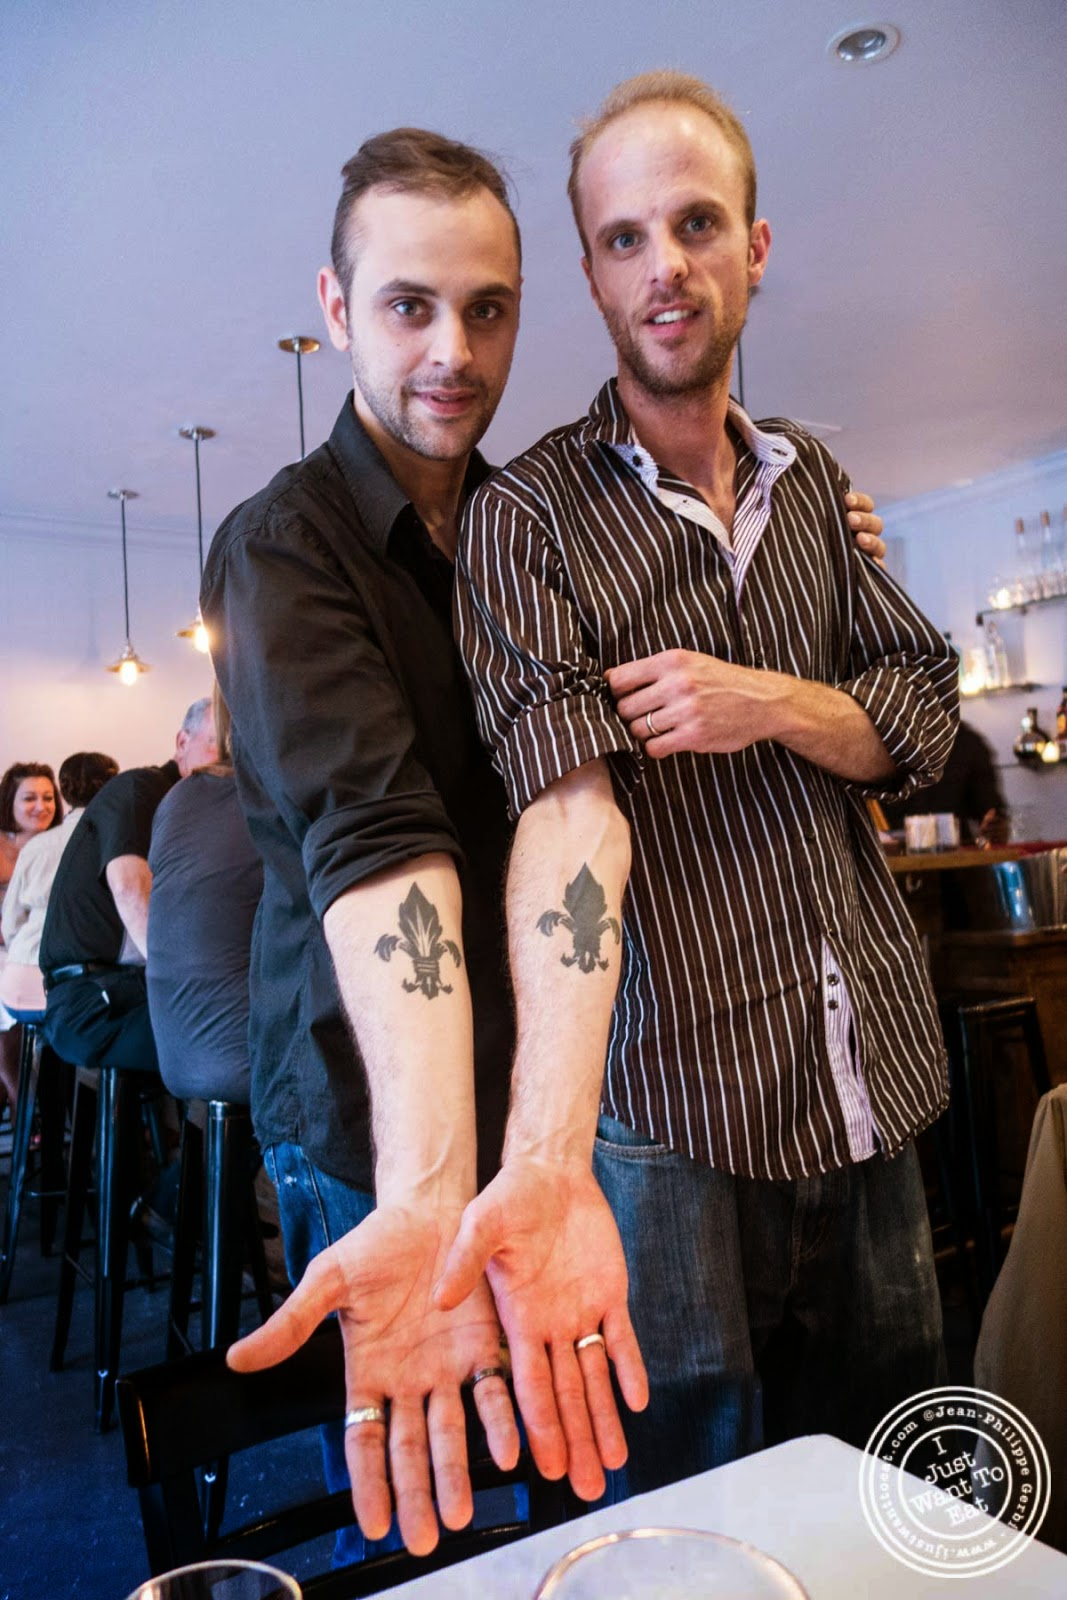 image of Alexis and Thibault Piettre from Frere de Lys, French restaurant on the Upper East Side, NY